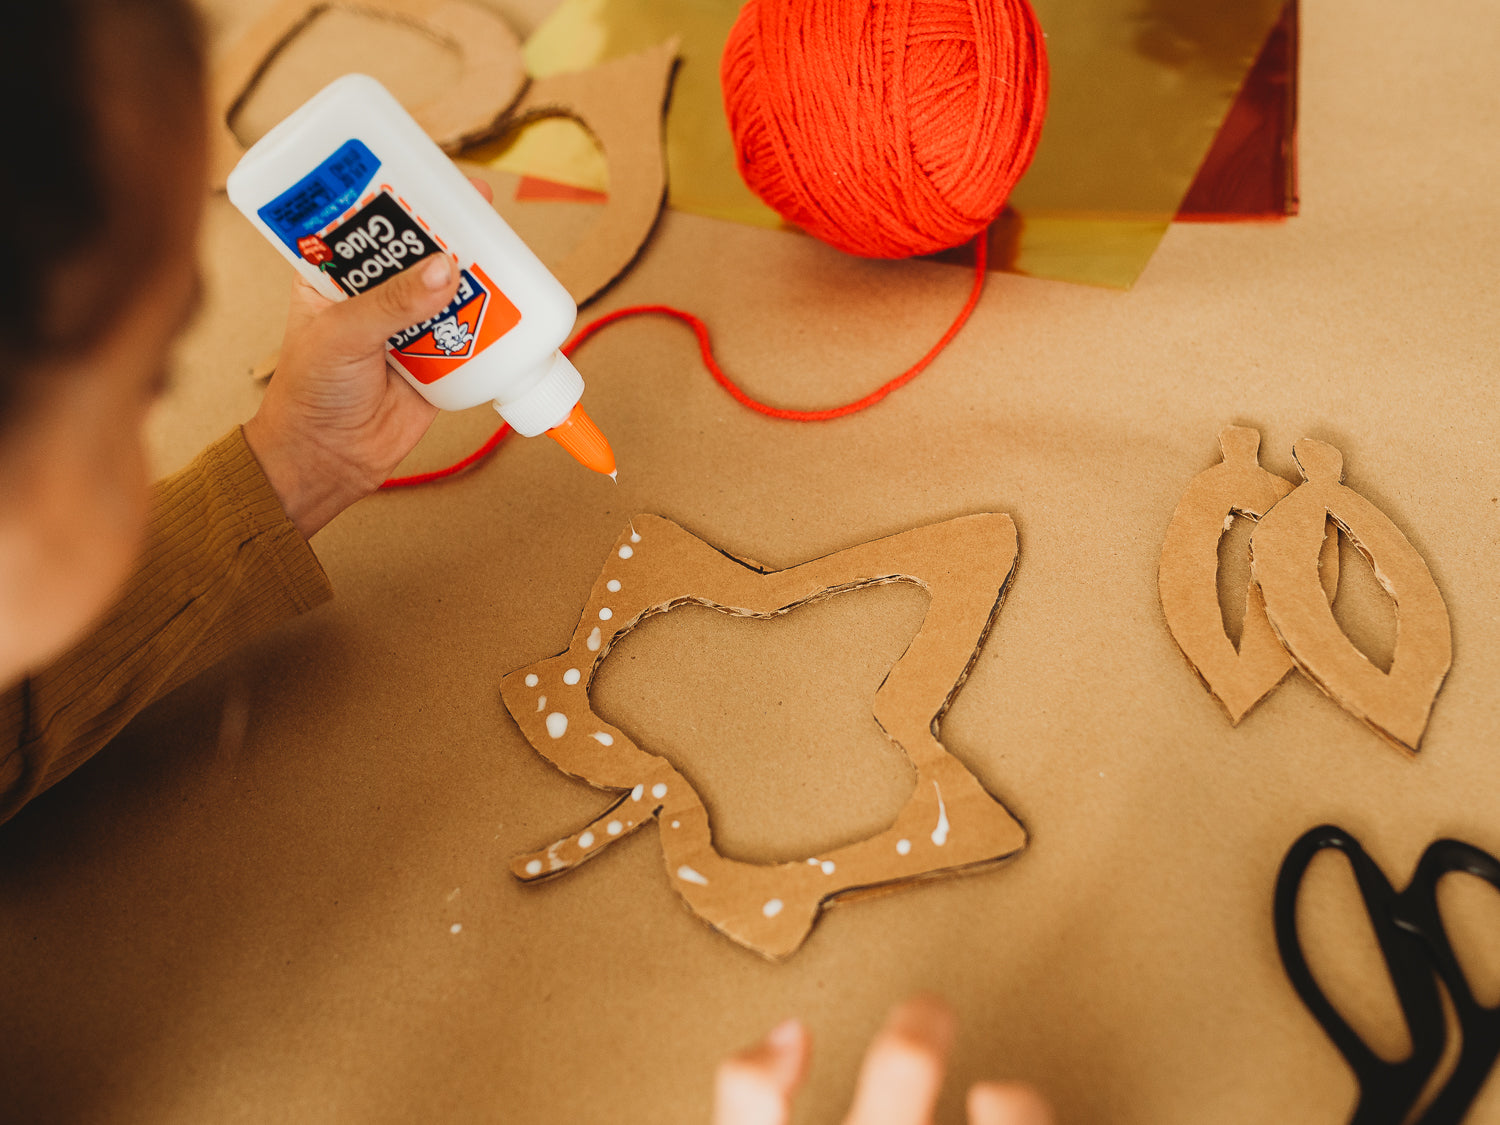 A child puts glue on cardboard for an eco-friendly fall crafts project